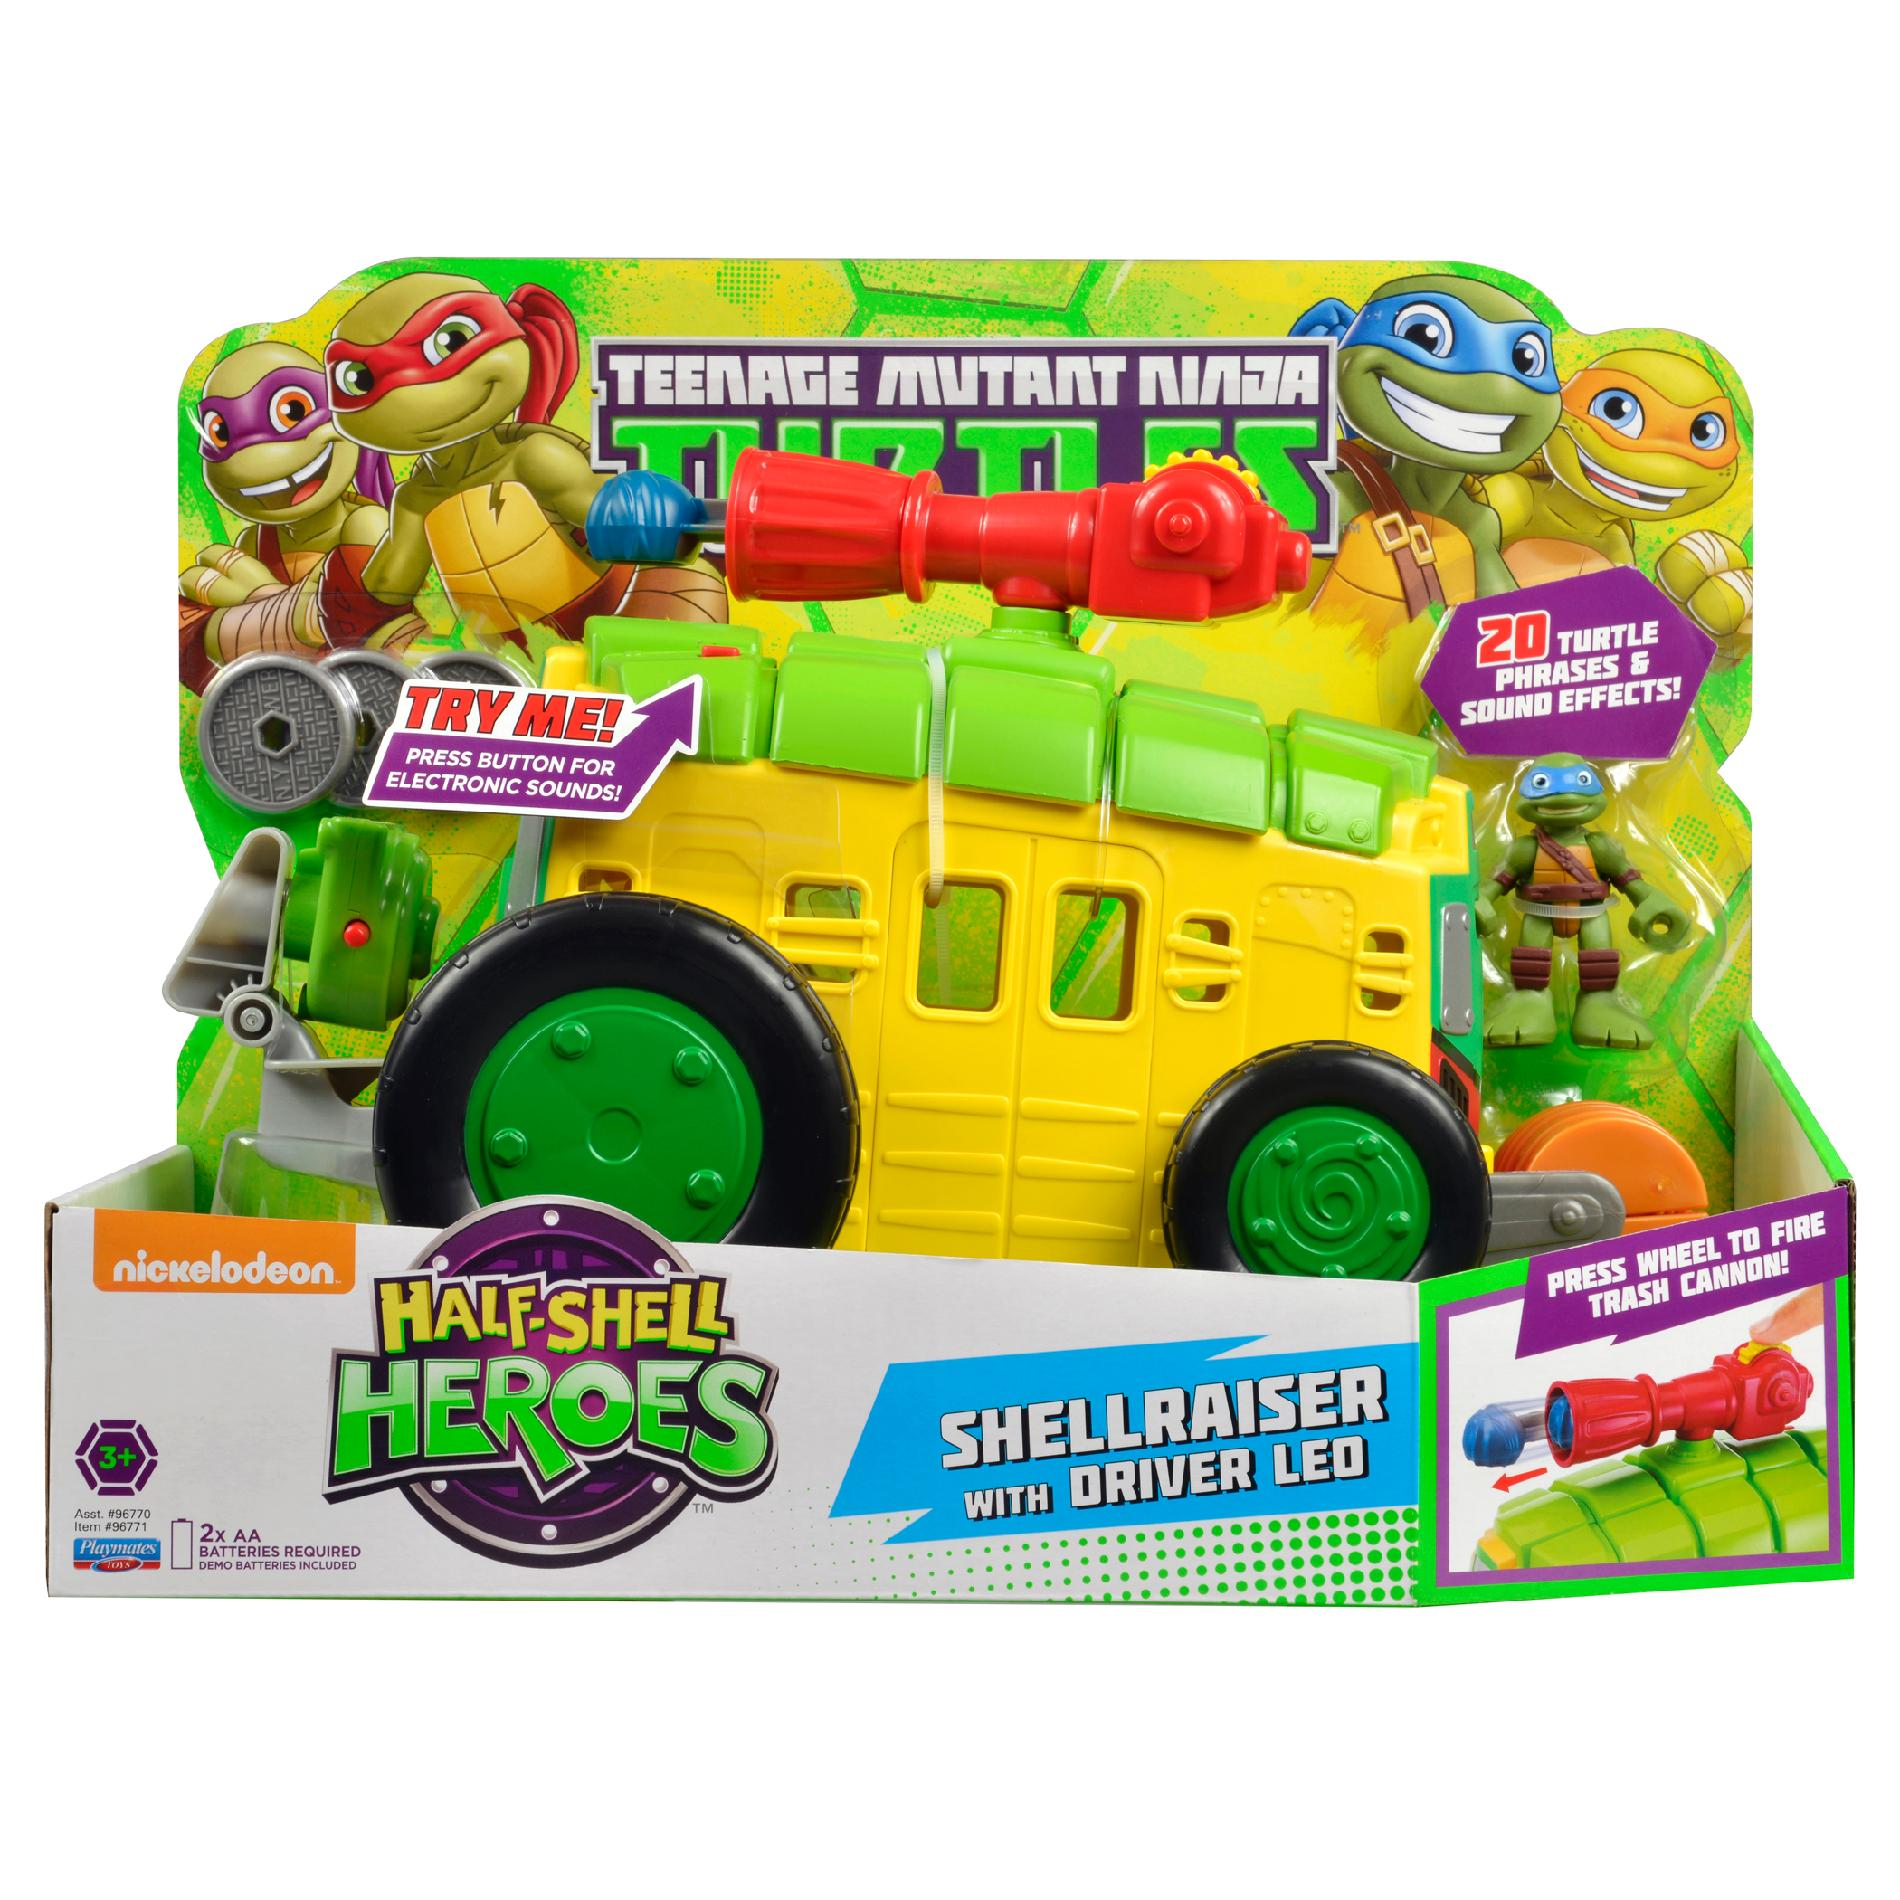 Half-Shell Heroes Shellraiser with Driver Leo (2014 toy)